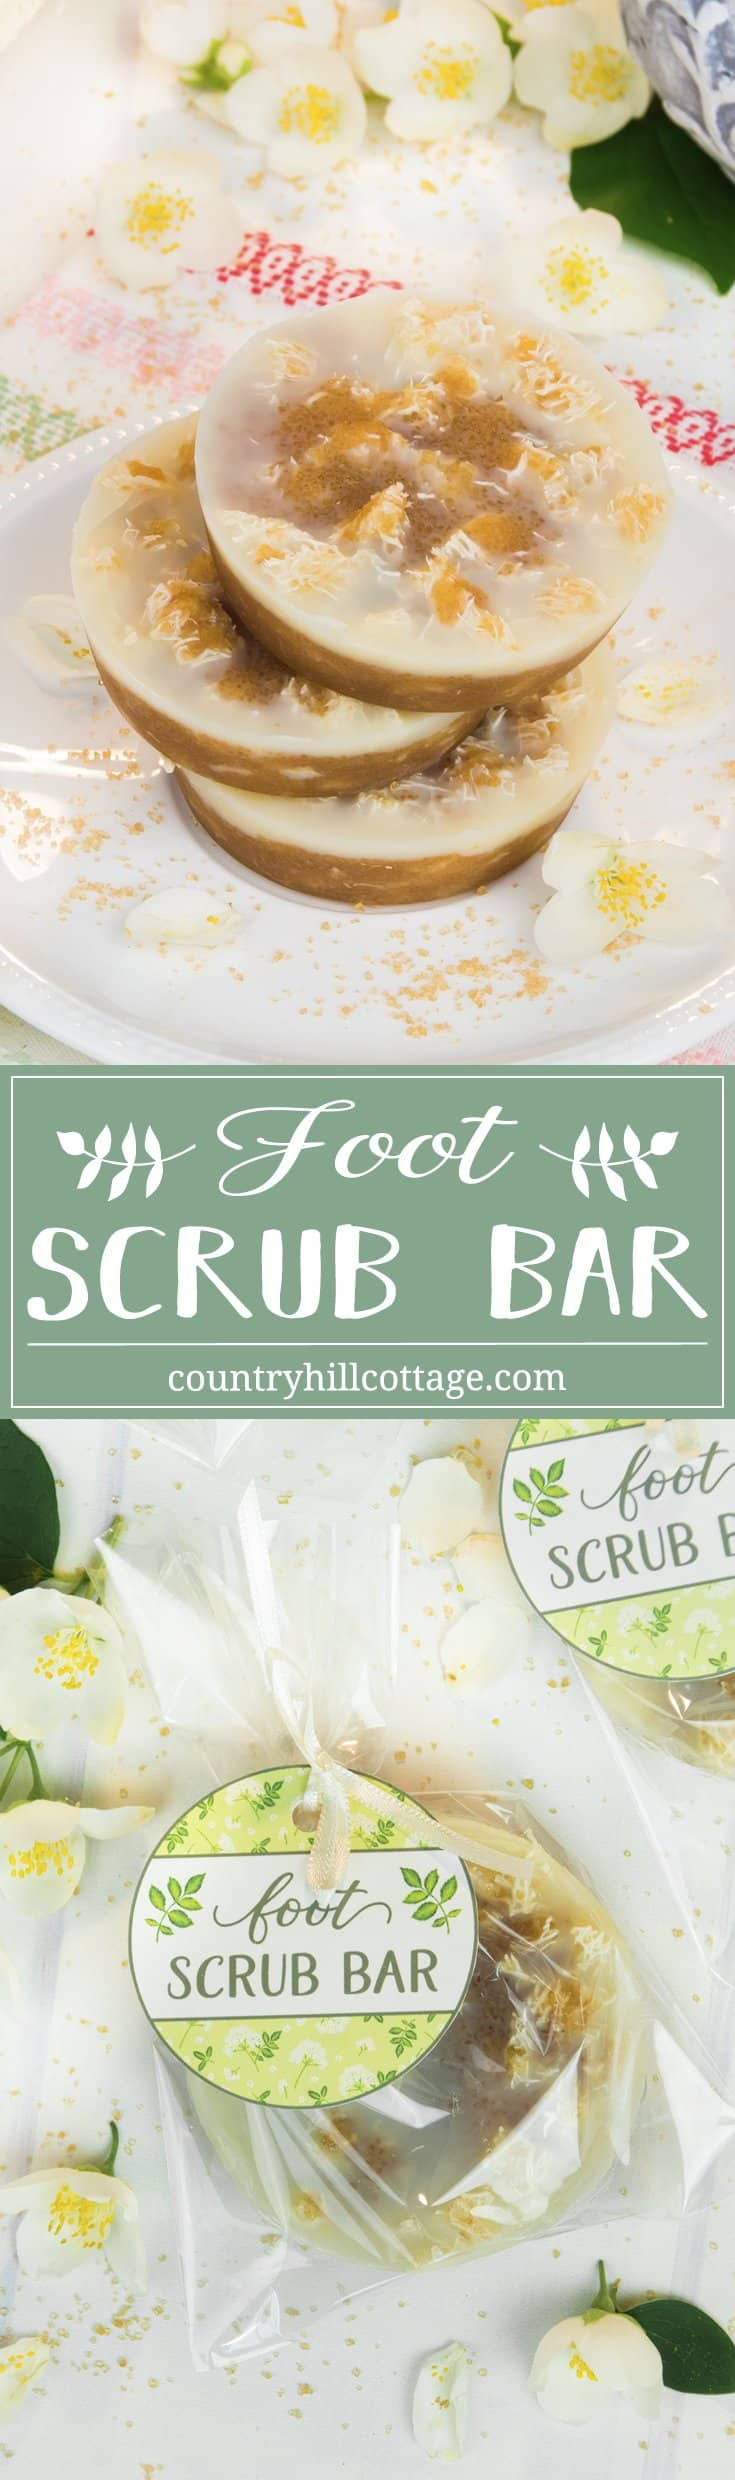 Say bye to rough, cracked feet with an all-natural foot scrub bar! This foot peeling is a real two-in-one treatment to care for dry, callous skin. The solid components of the bar exfoliate the feet and remove dead skins cells, while the oils and butter hydrate and replenish the natural lipids of your skin. This peeling bar is made with loofah sponge, cane sugar, cocoa butter, and bee or candelilla wax. #footpeeling #footscrub #scrubbar #essentialoils #beautyrecipe | countryhillcottage.com